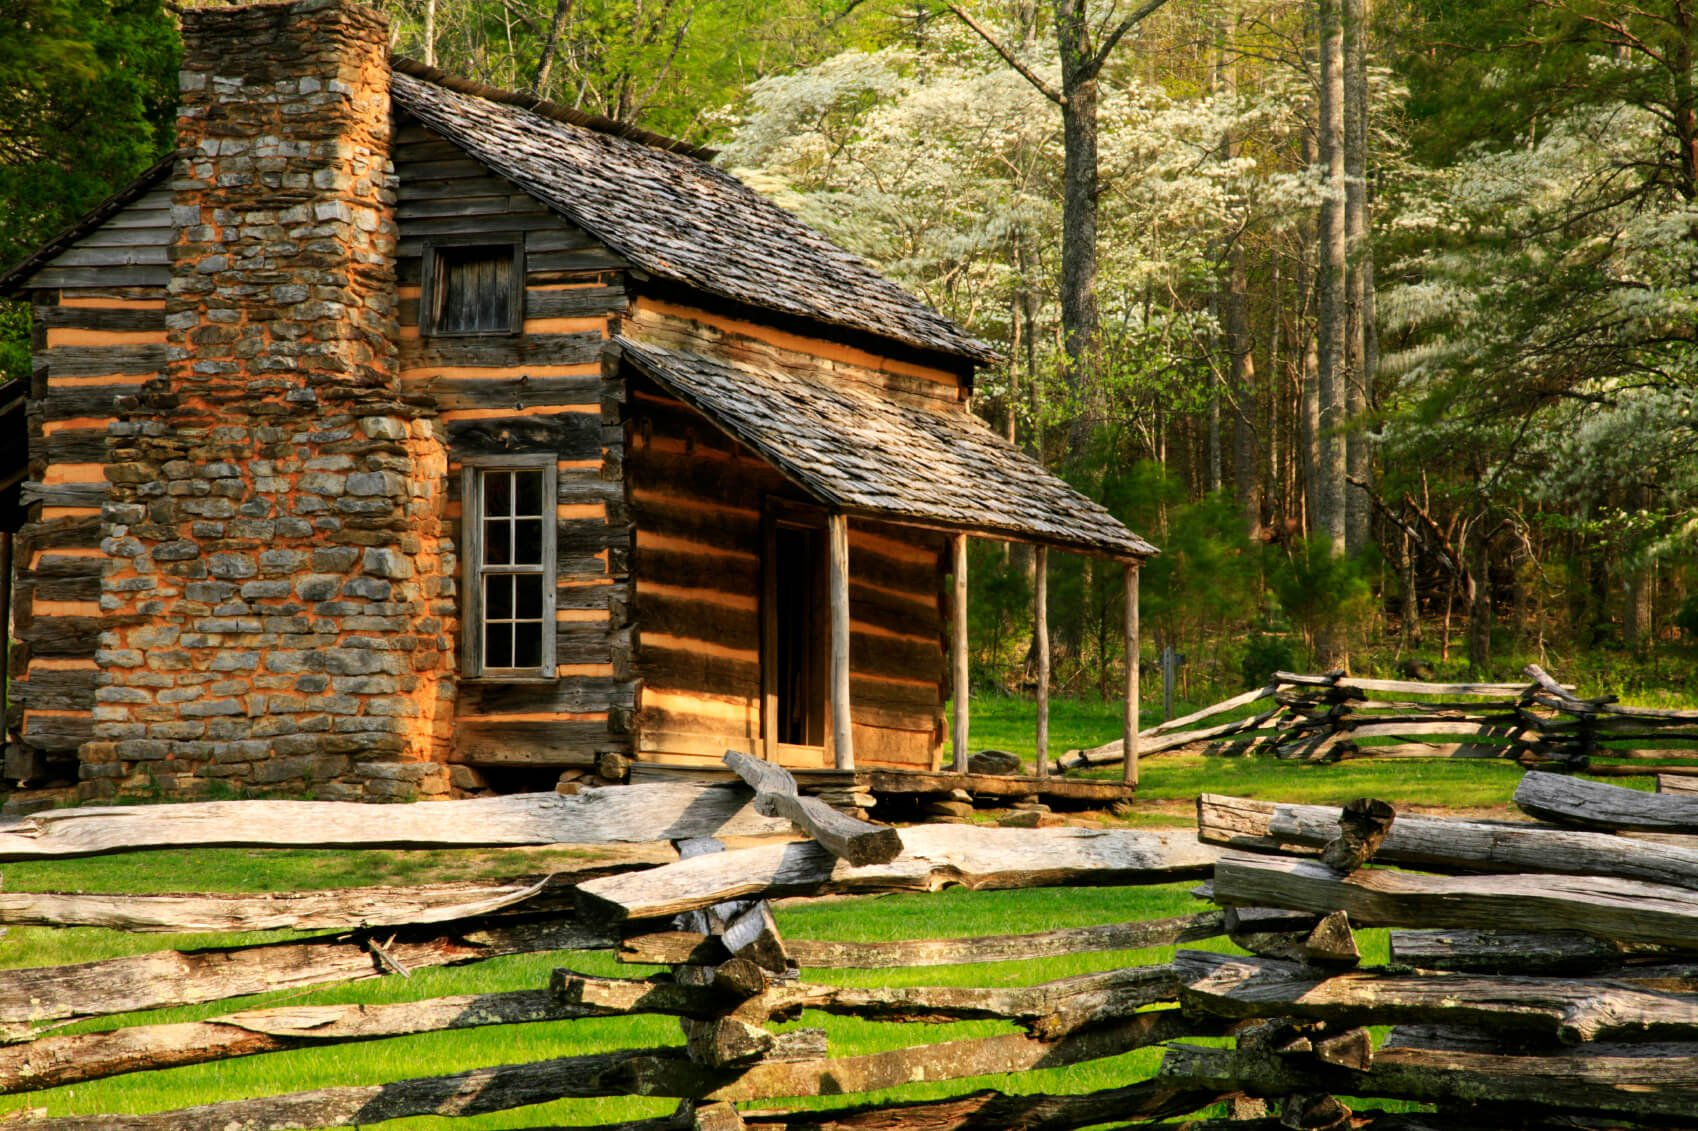 Split log must be treated regularly for insect infestation, and any new cracks in the log must be sealed to prevent rot. This cabin used the flat, split side of logs to create its exterior.